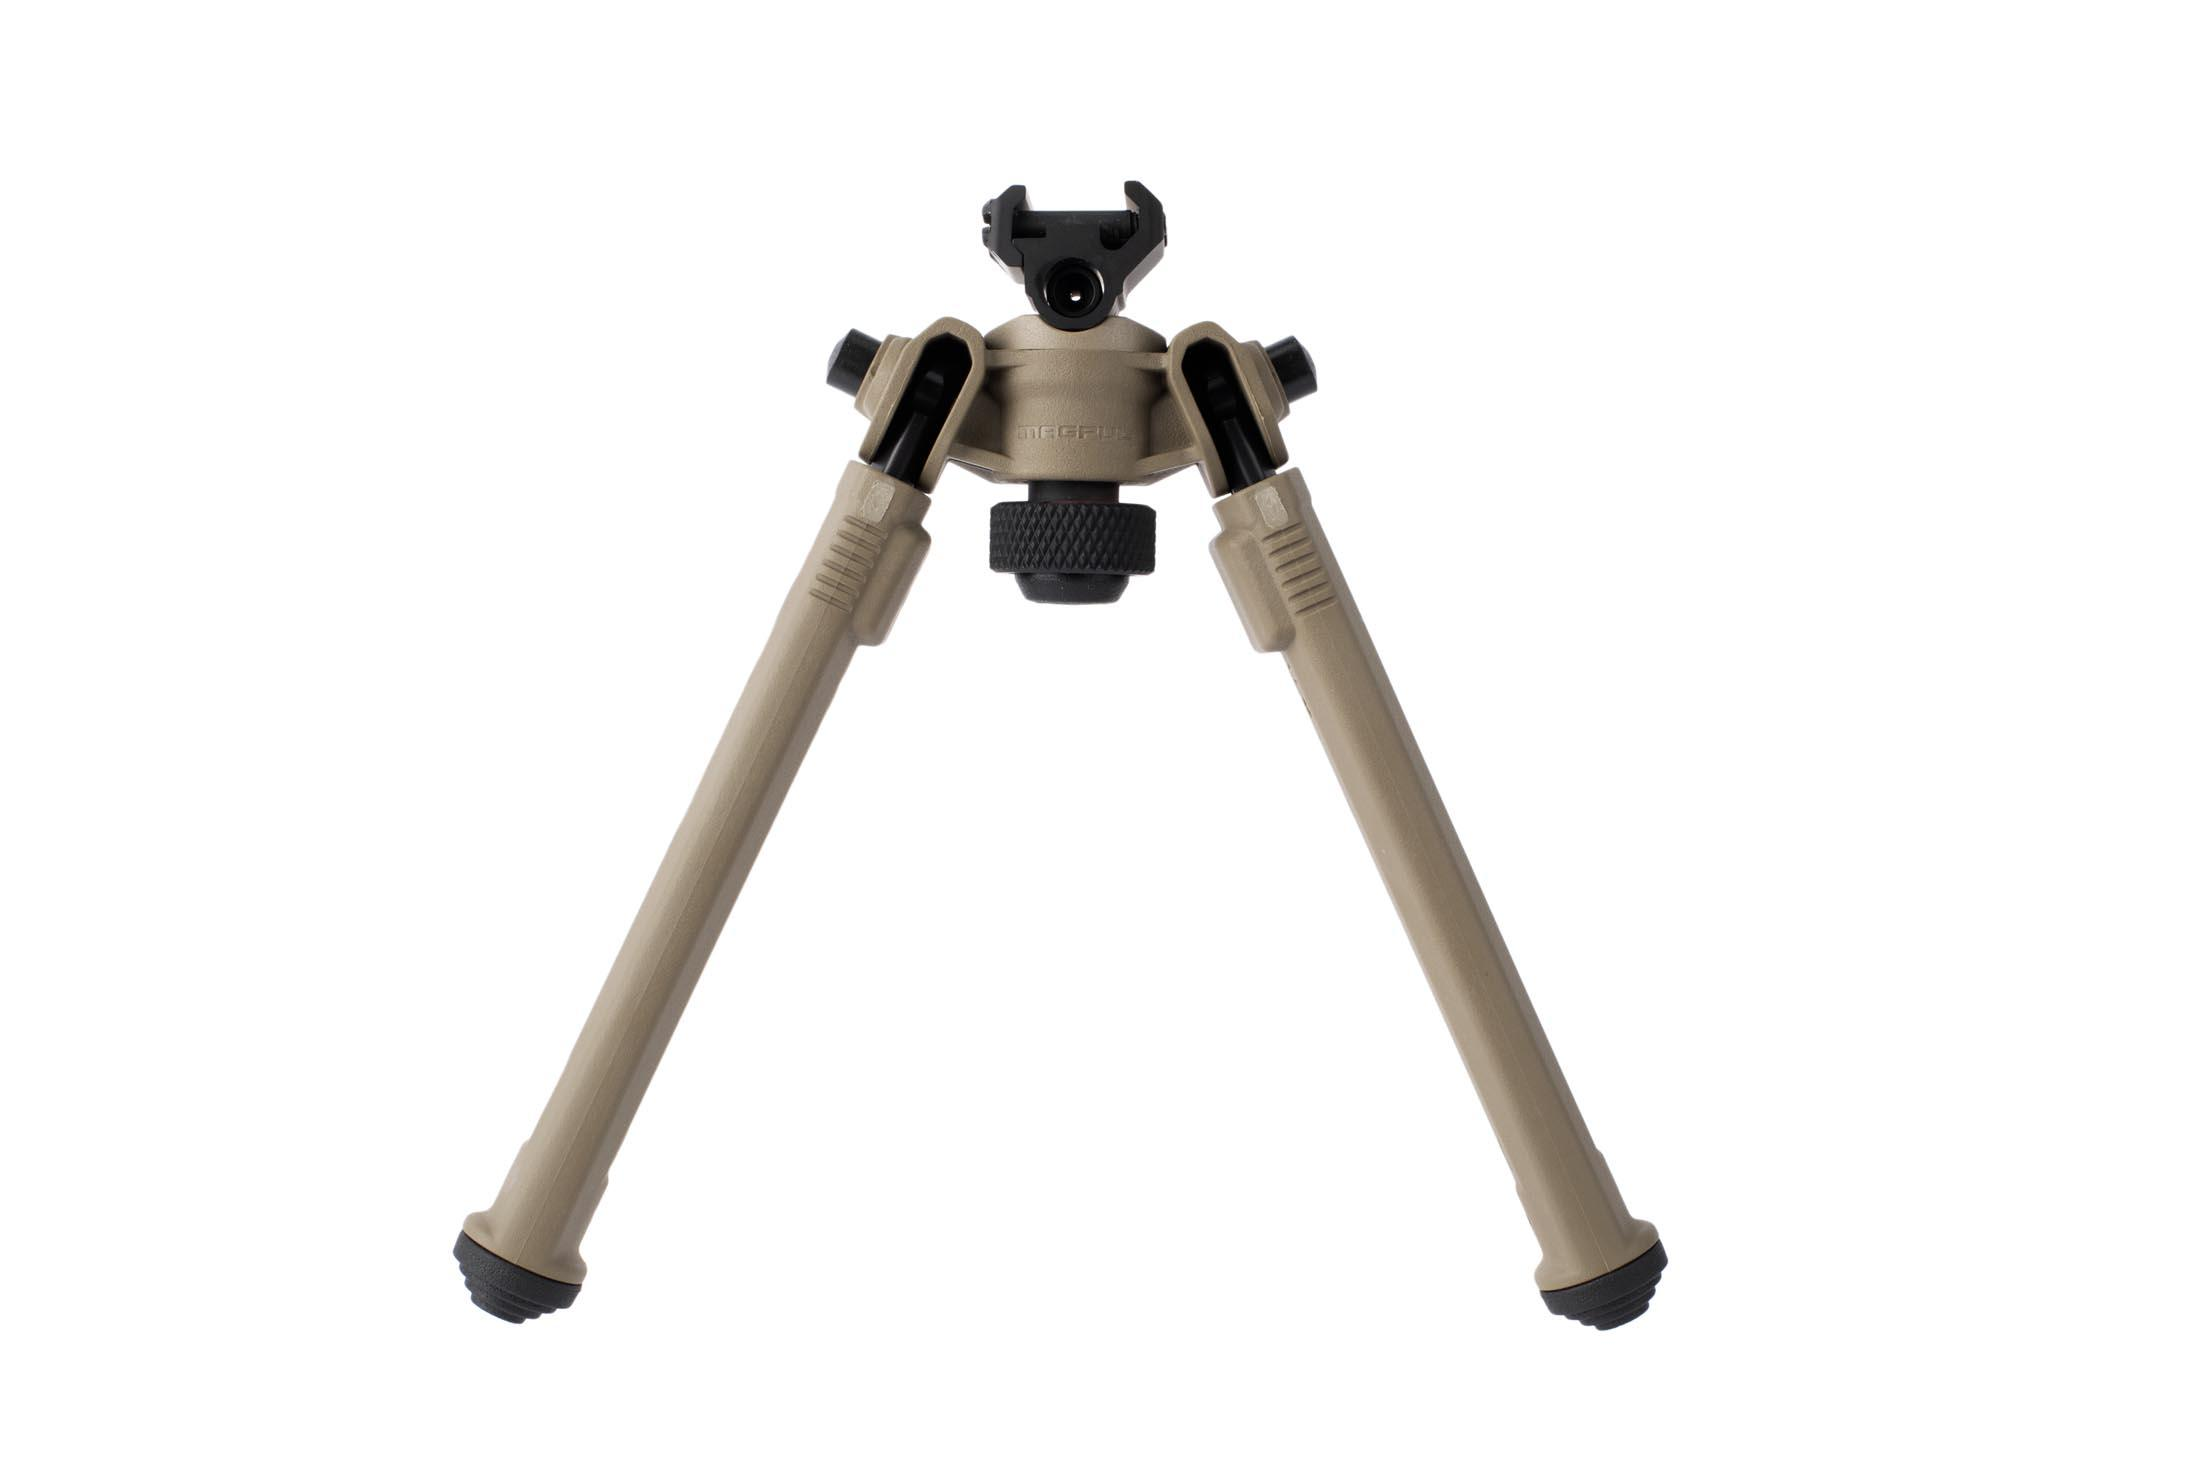 Magpul flat dark earth M1913 bipods have adjustable pan and tilt with adjustable length legs with stepped polymer feet for stability